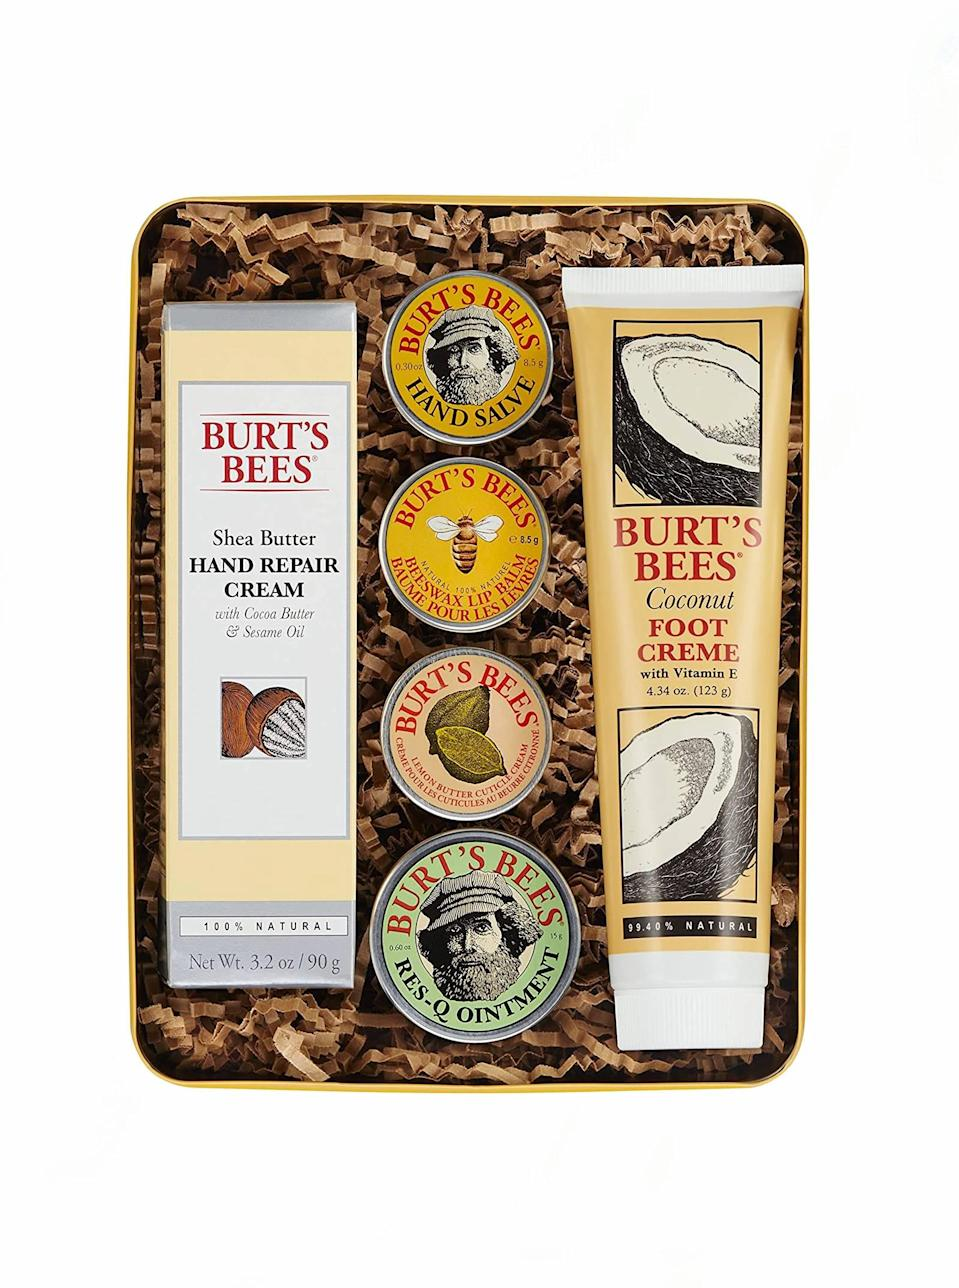 "The all-natural mama who keeps it classic will get a little bit of everything with this variety pack from Burt's Bees. With regular use of these holy grail products, her hands, feet, and lips will be soothed to the max. $19, Amazon. <a href=""https://www.amazon.com/dp/B00VK5SG46/"" rel=""nofollow noopener"" target=""_blank"" data-ylk=""slk:Get it now!"" class=""link rapid-noclick-resp"">Get it now!</a>"